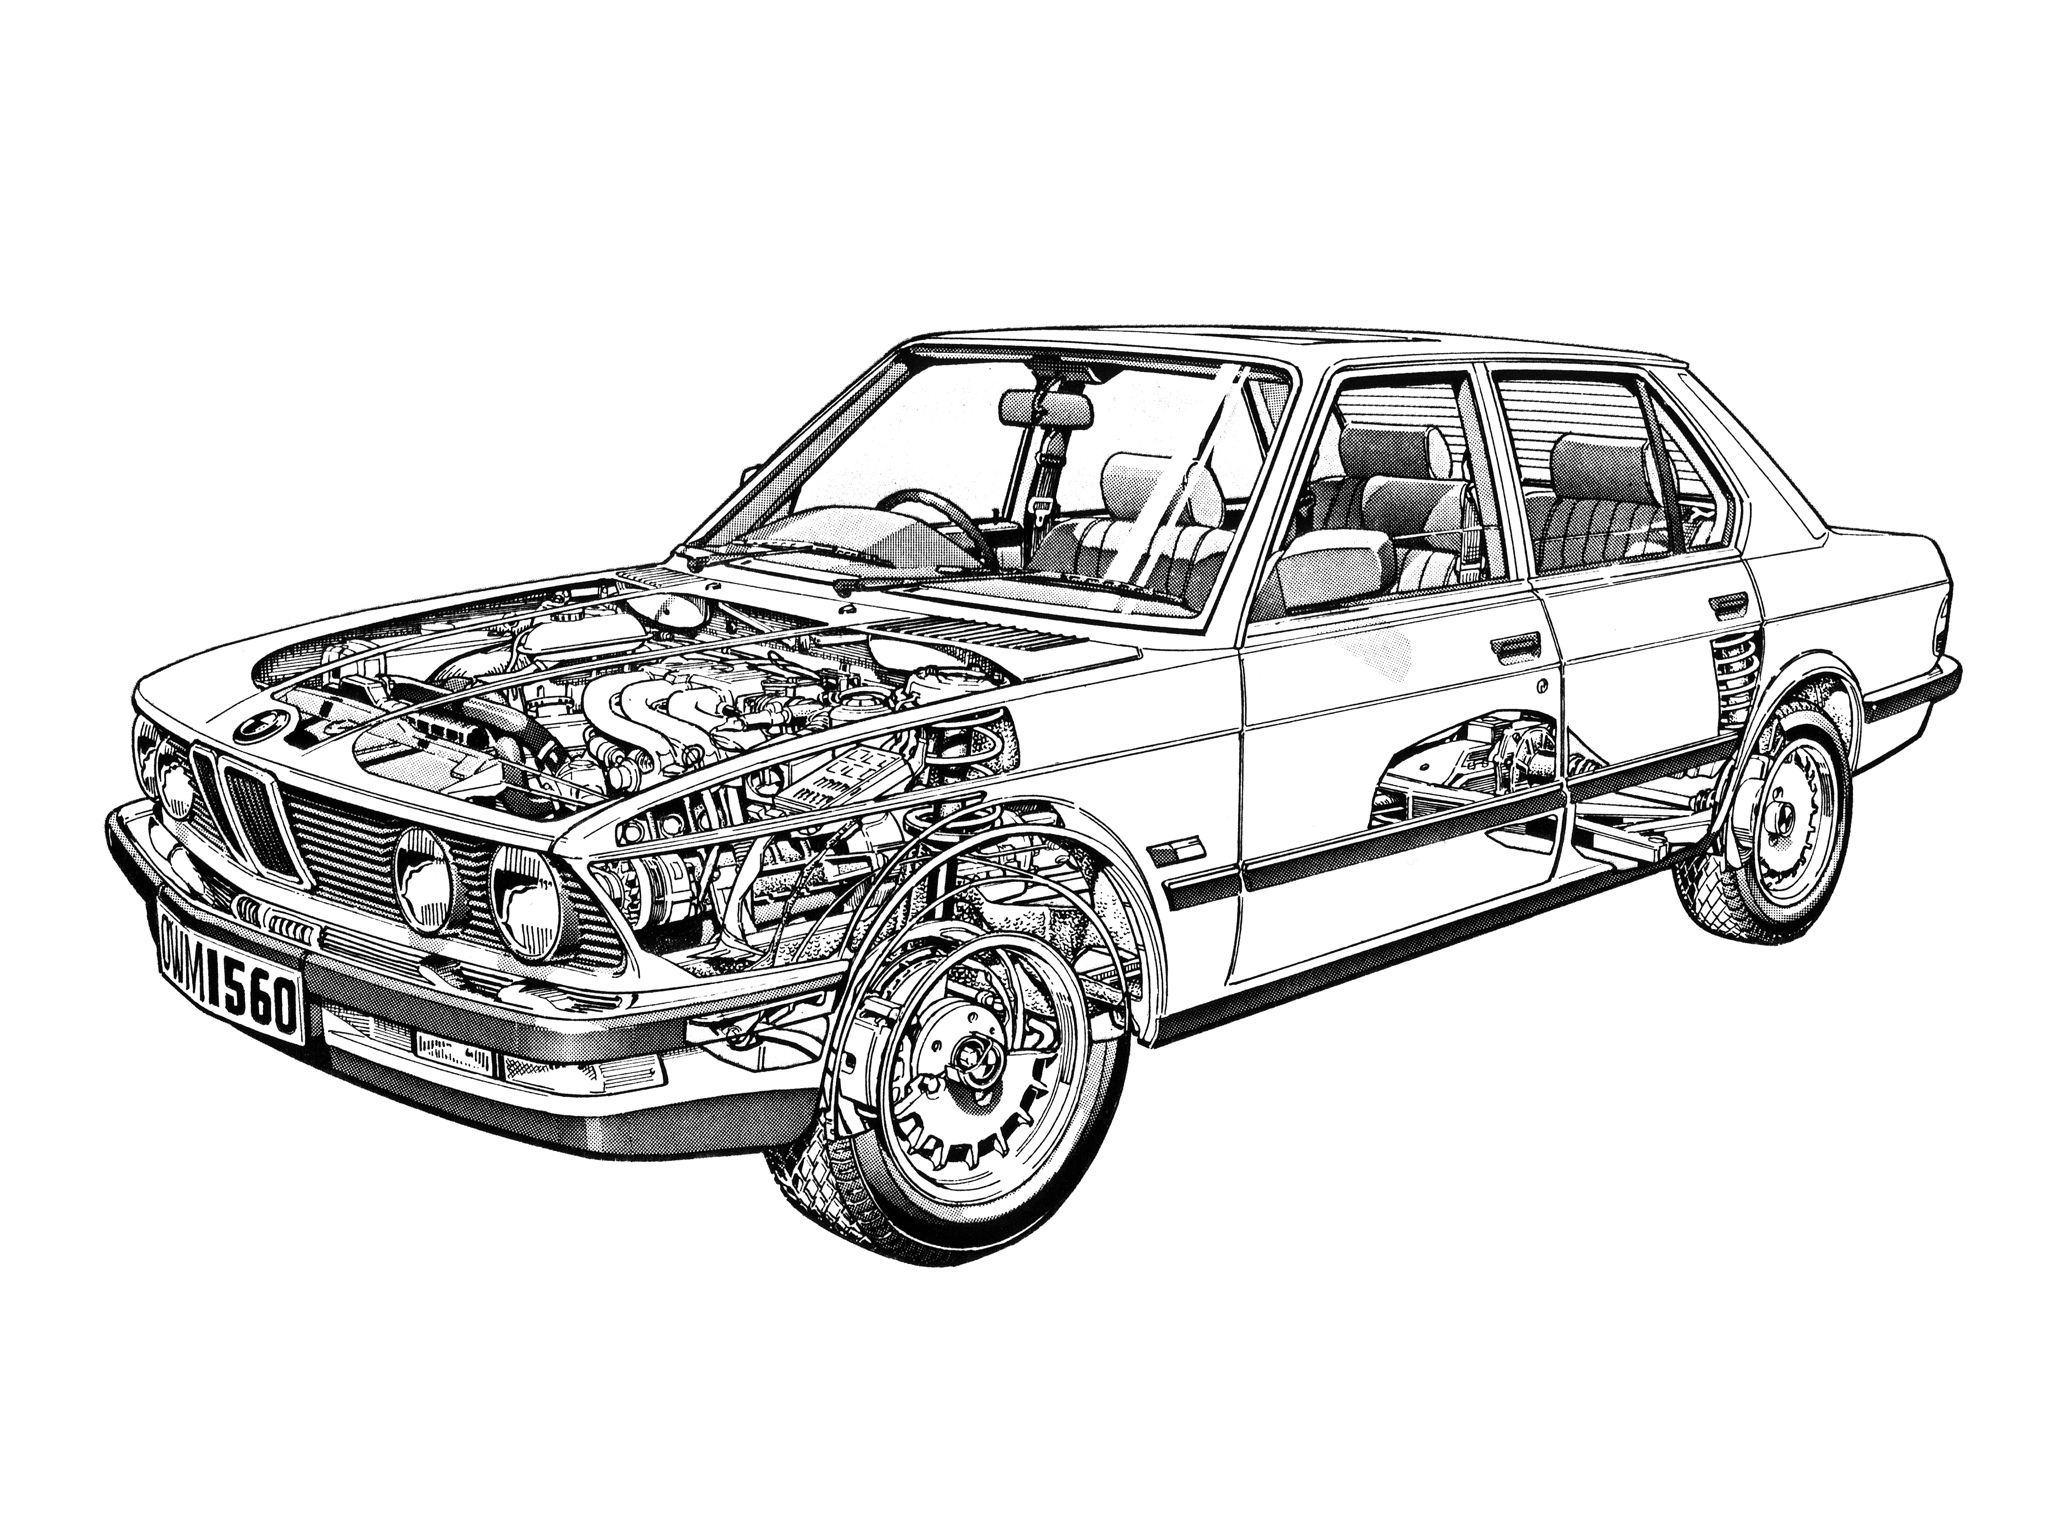 Group Test Audi 100cd C3 Vs Bmw 525e E28 And Ford Granada 2 8gl Mark Ii Saab 900 Turbo